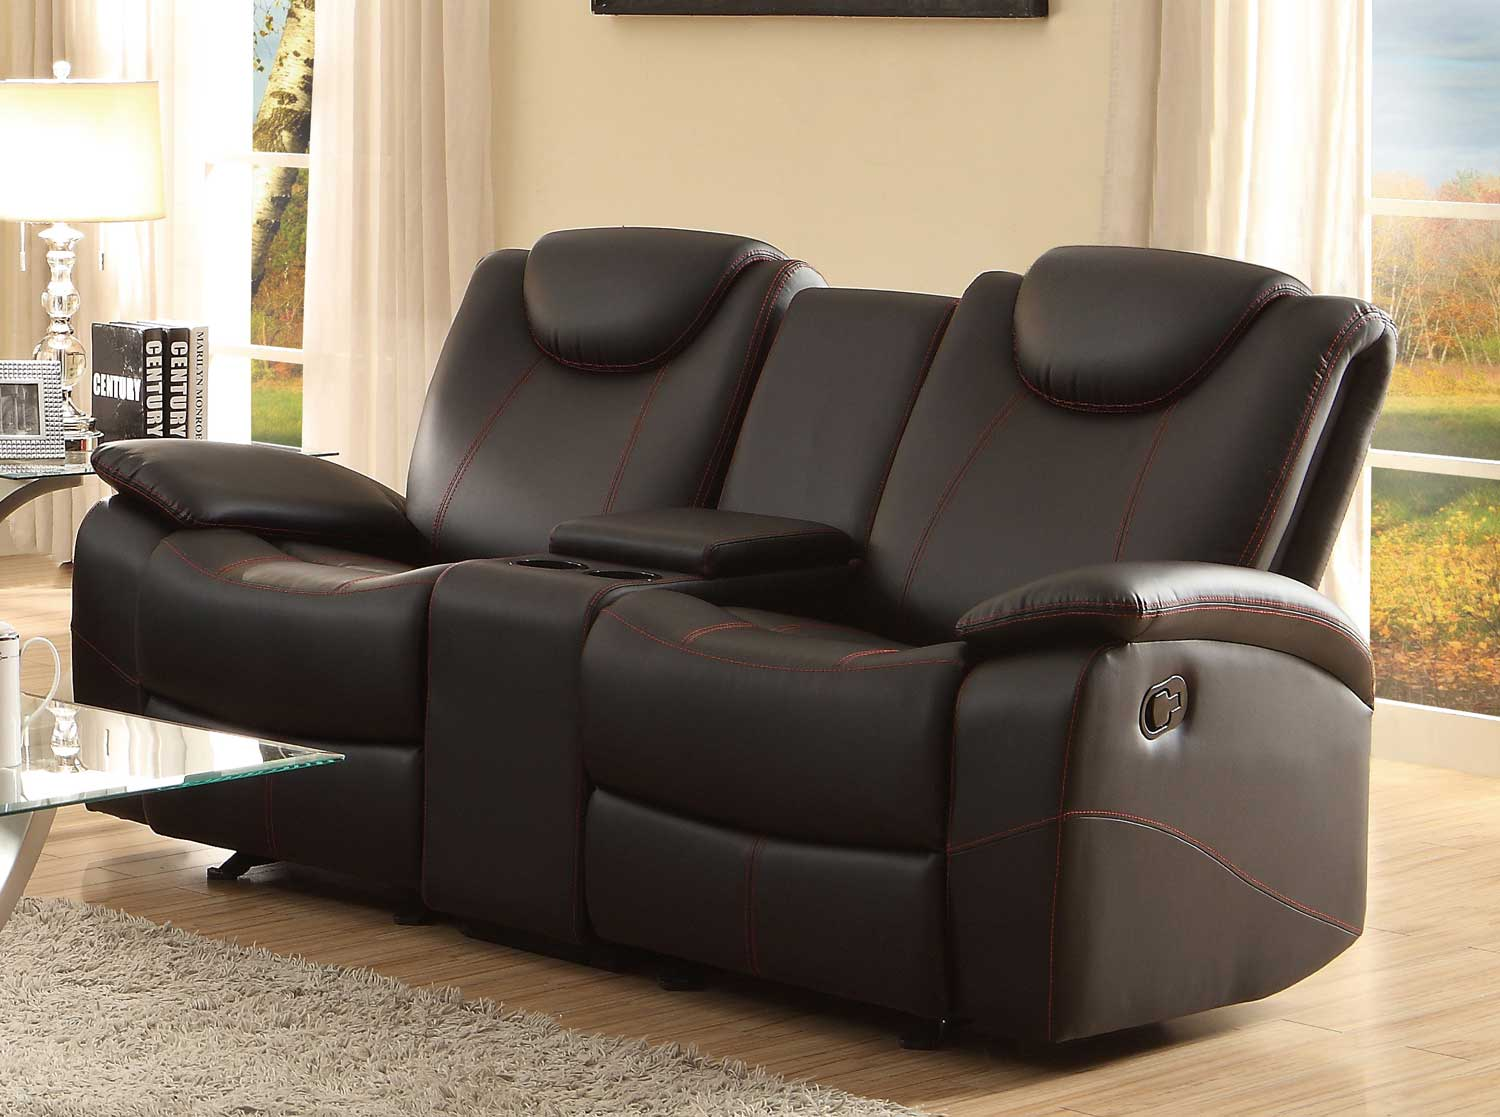 Homelegance talbot double glider reclining love seat with center console black bonded leather Reclining loveseat with center console